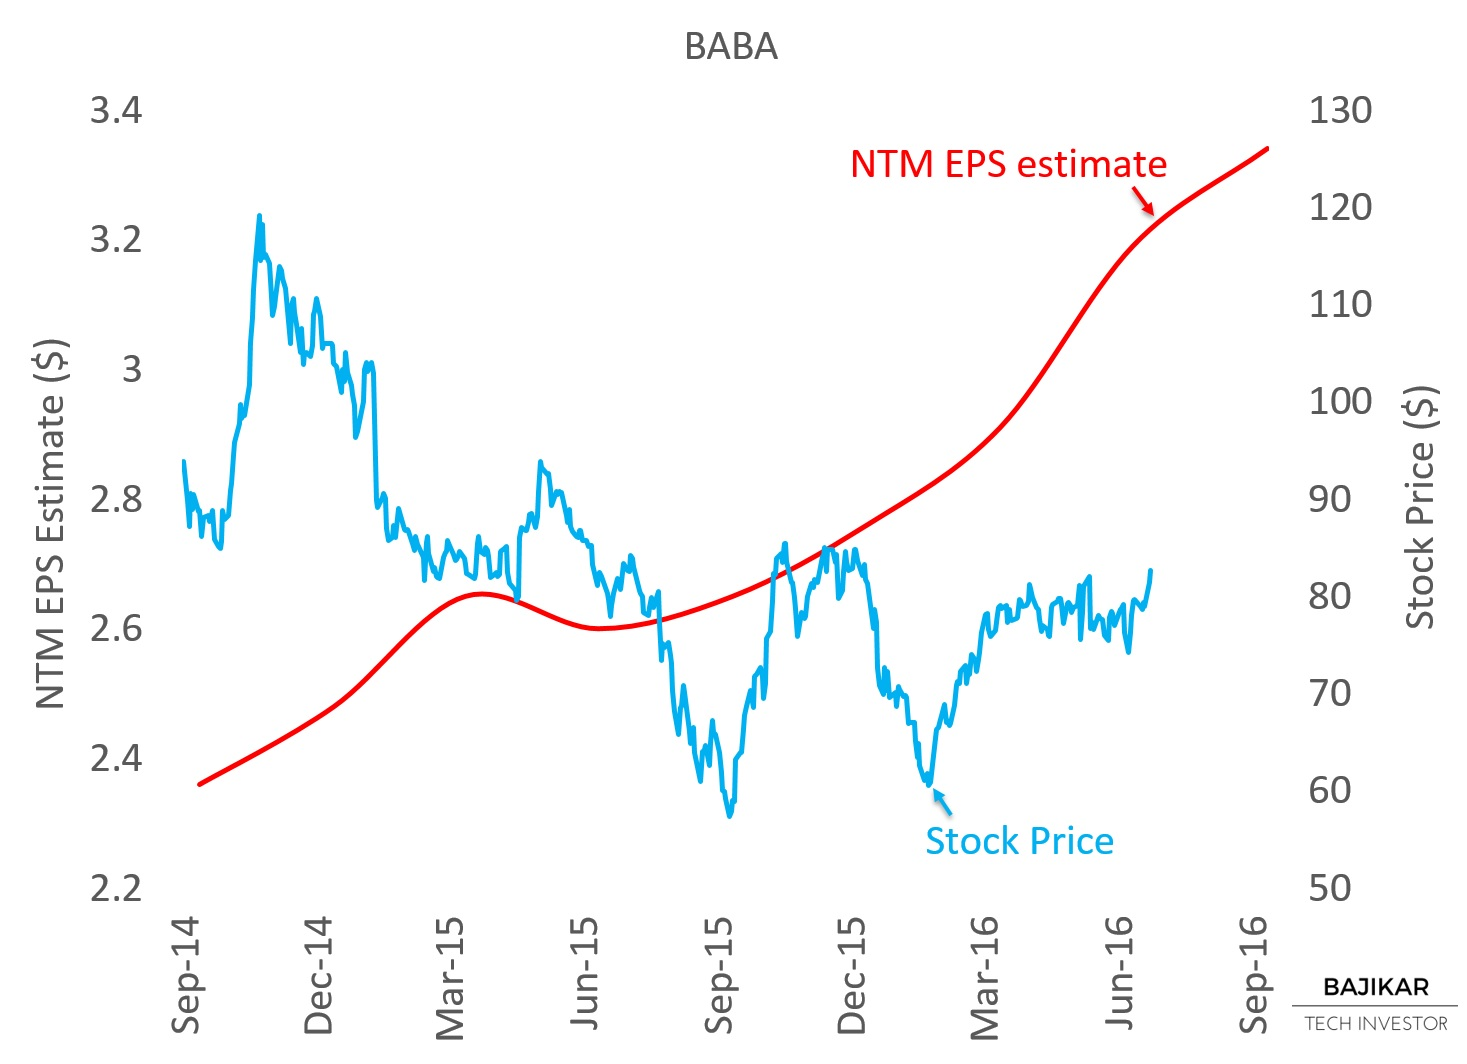 BABA NTM EPS vs. Stock Price